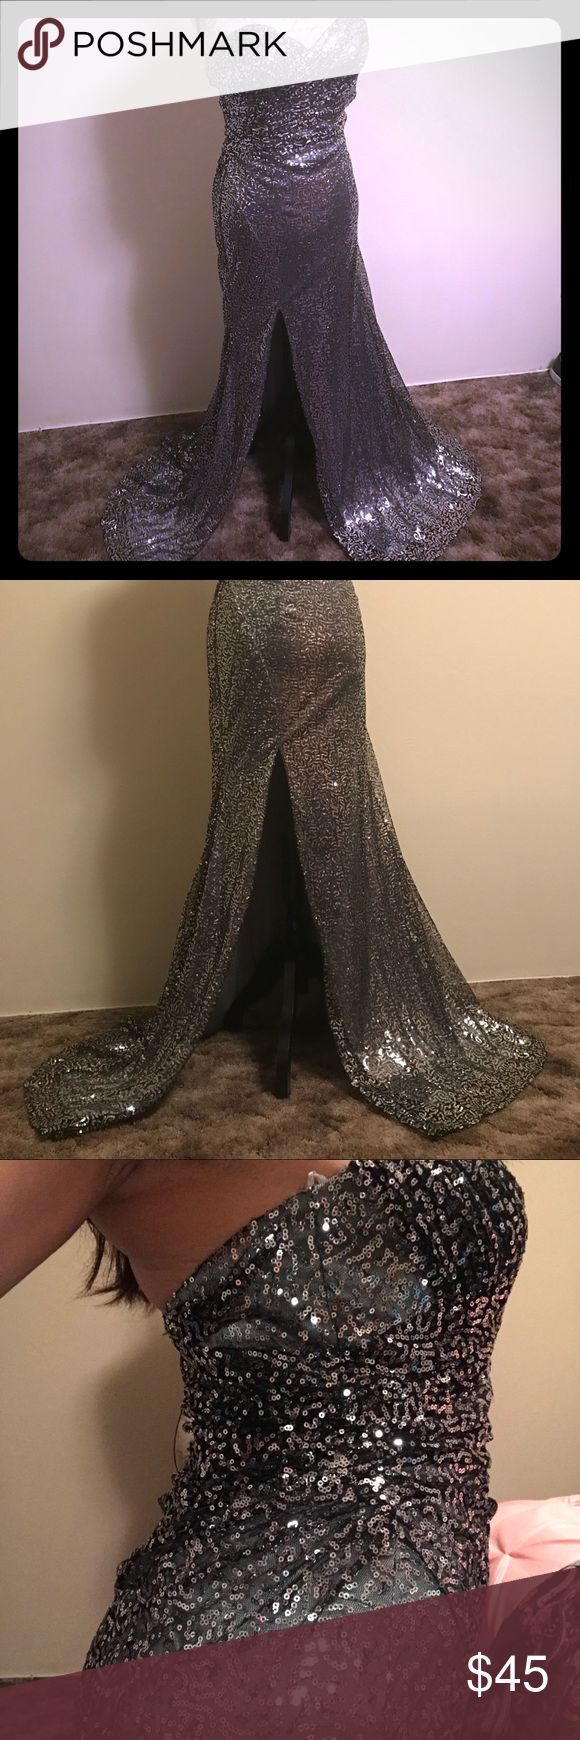 Long silver sequence dress Embrace the night with this bare shoulders, glamorous and sequenced dress, it's long and has a slit on the right.  ASPEED, size small, $45 (that will turn heads!) Aspeed Dresses Strapless